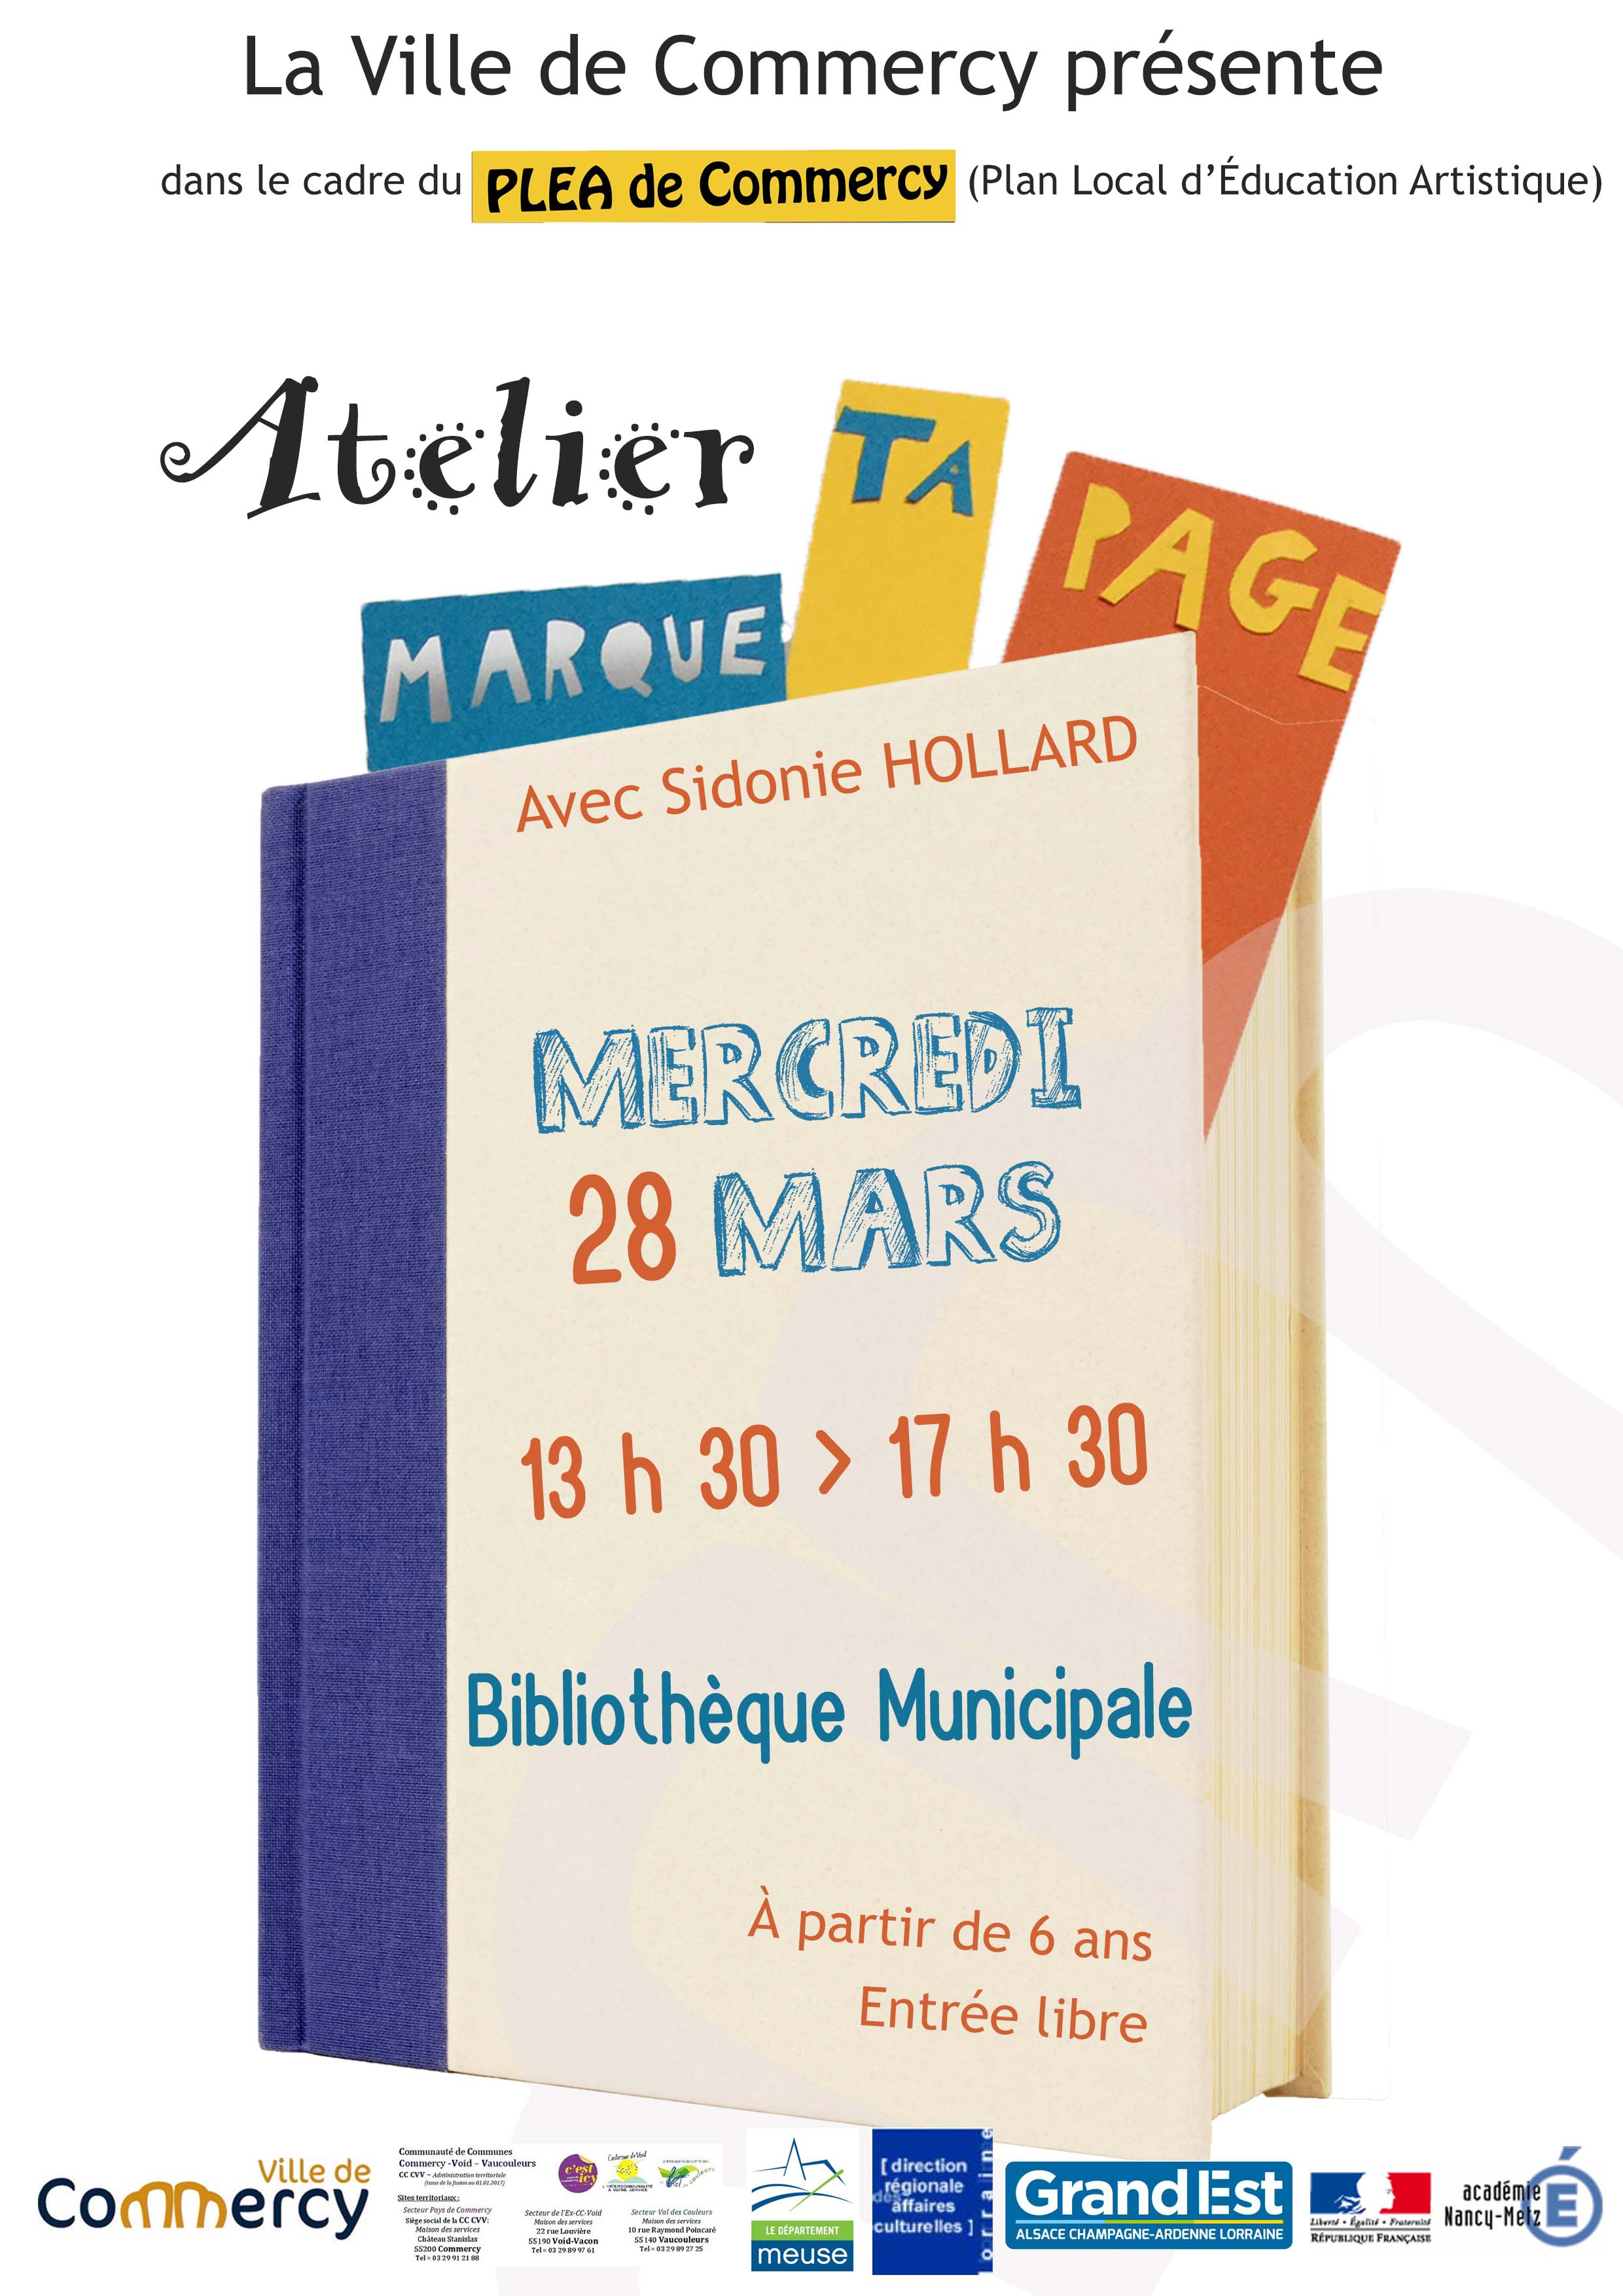 Aff_Culture_Bibliotheque_MarqueTaPage_2018